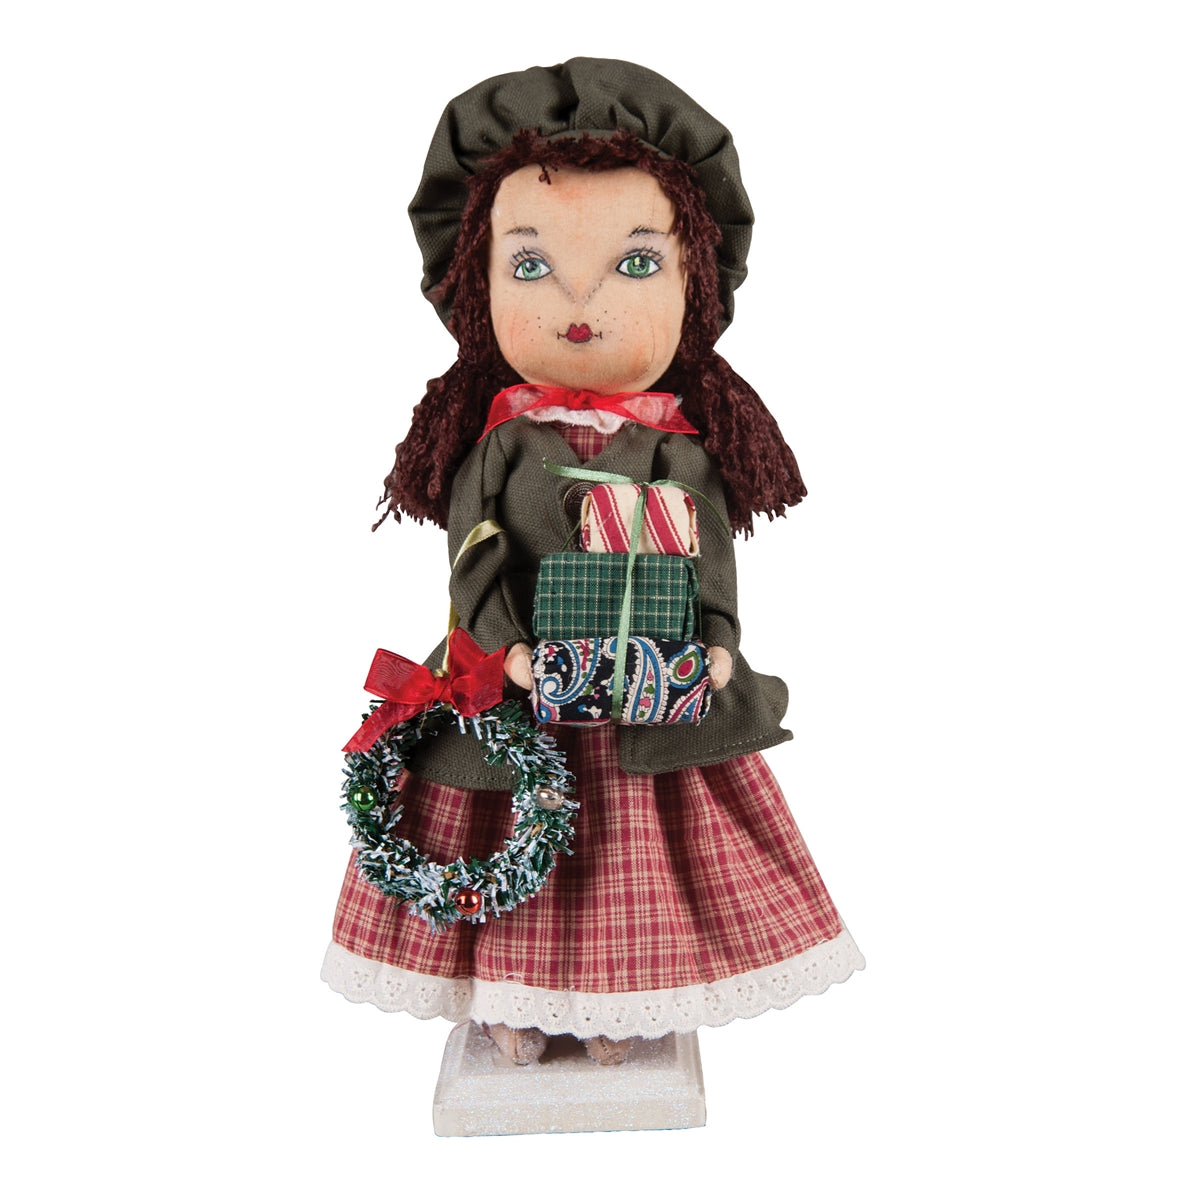 Corrine with Christmas Gifts Standing Doll by Joe Spencer